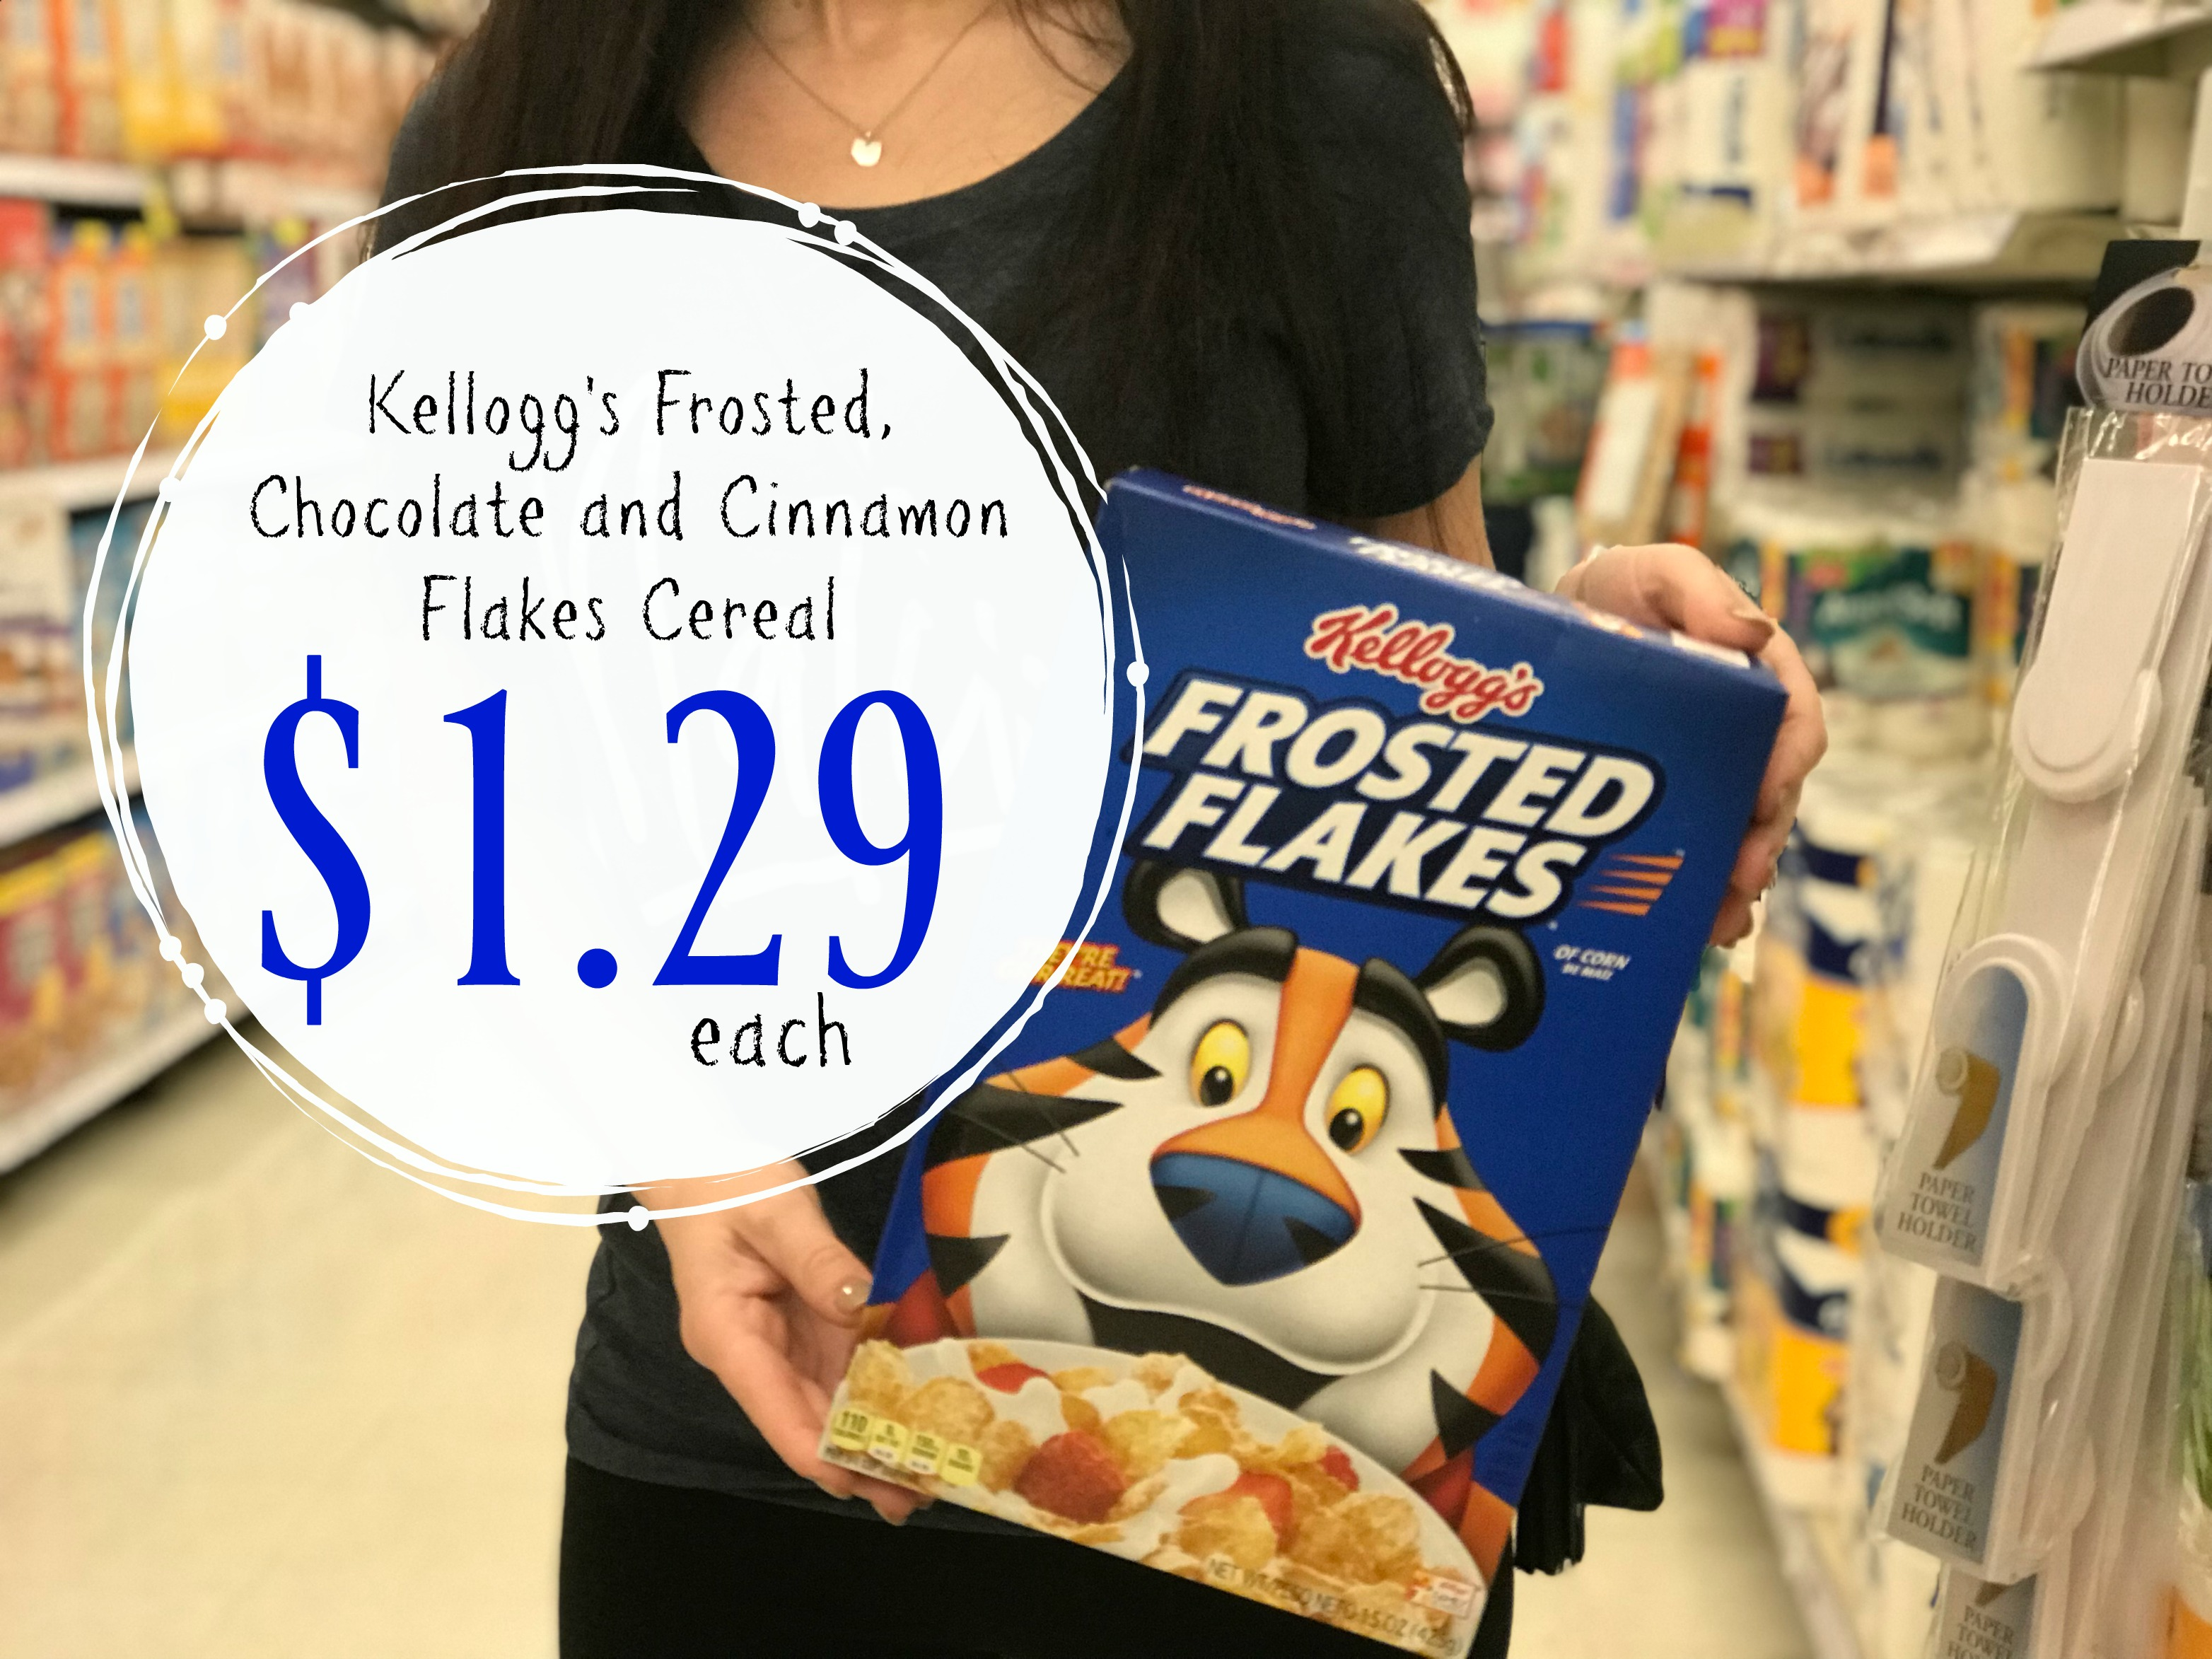 Fullsize Of Kelloggs Frosted Flakes